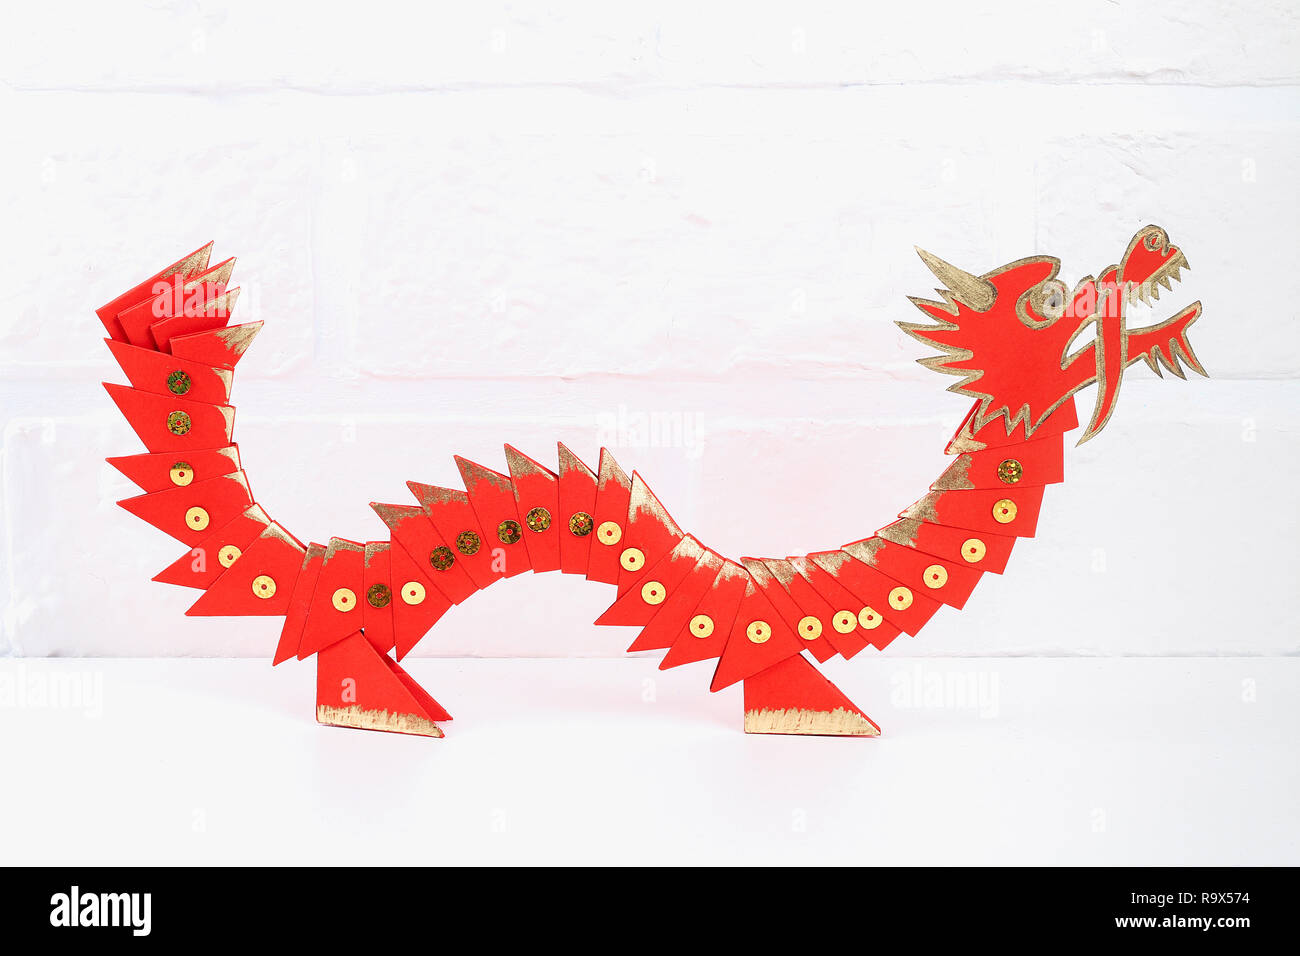 Diy Chinese Dragon On Wall Background Gift Ideas Decor Chinese New Year Handmade Red Gold Lunar Dragon Lion From Modular Origami Step By Step The Stock Photo Alamy